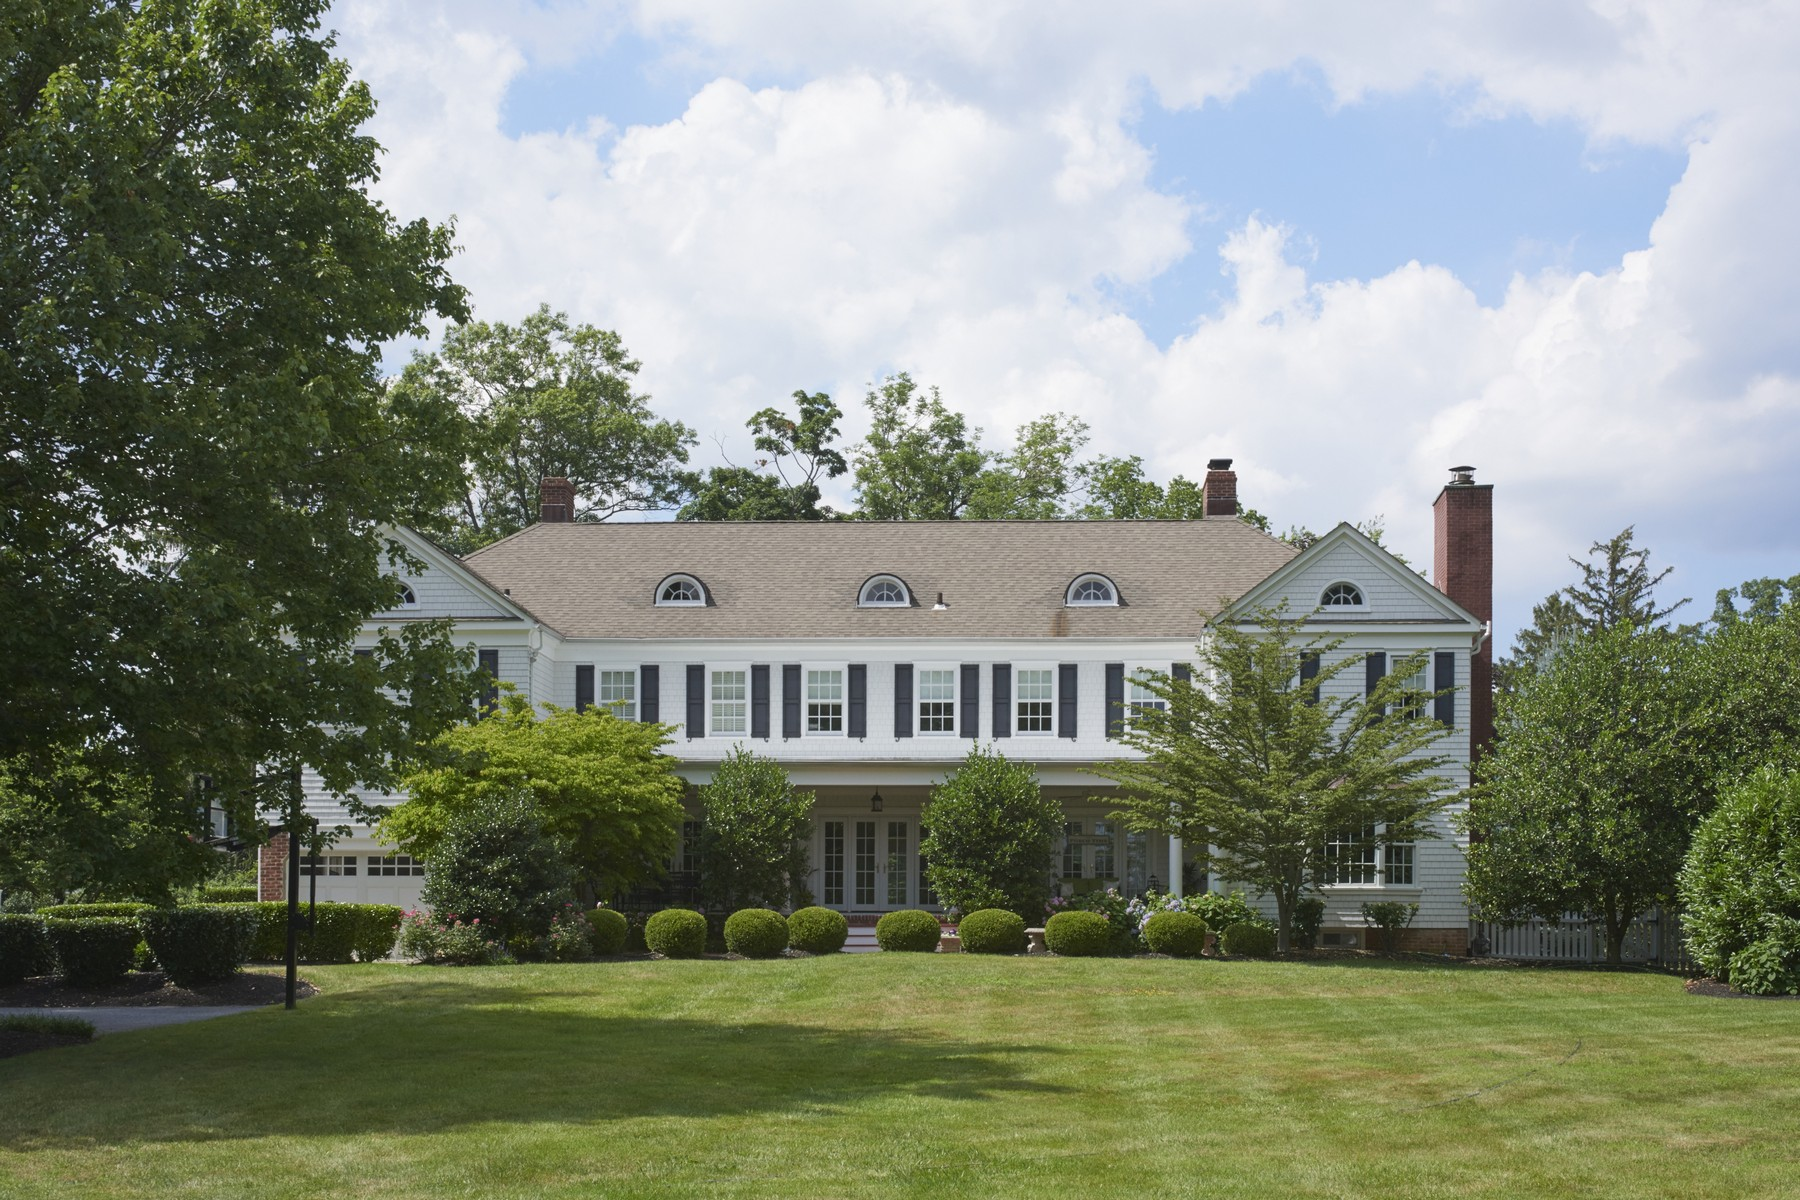 Single Family Home for Sale at Elegant Beauty Renovated 15 Elm Ln Shrewsbury, New Jersey, 07702 United States